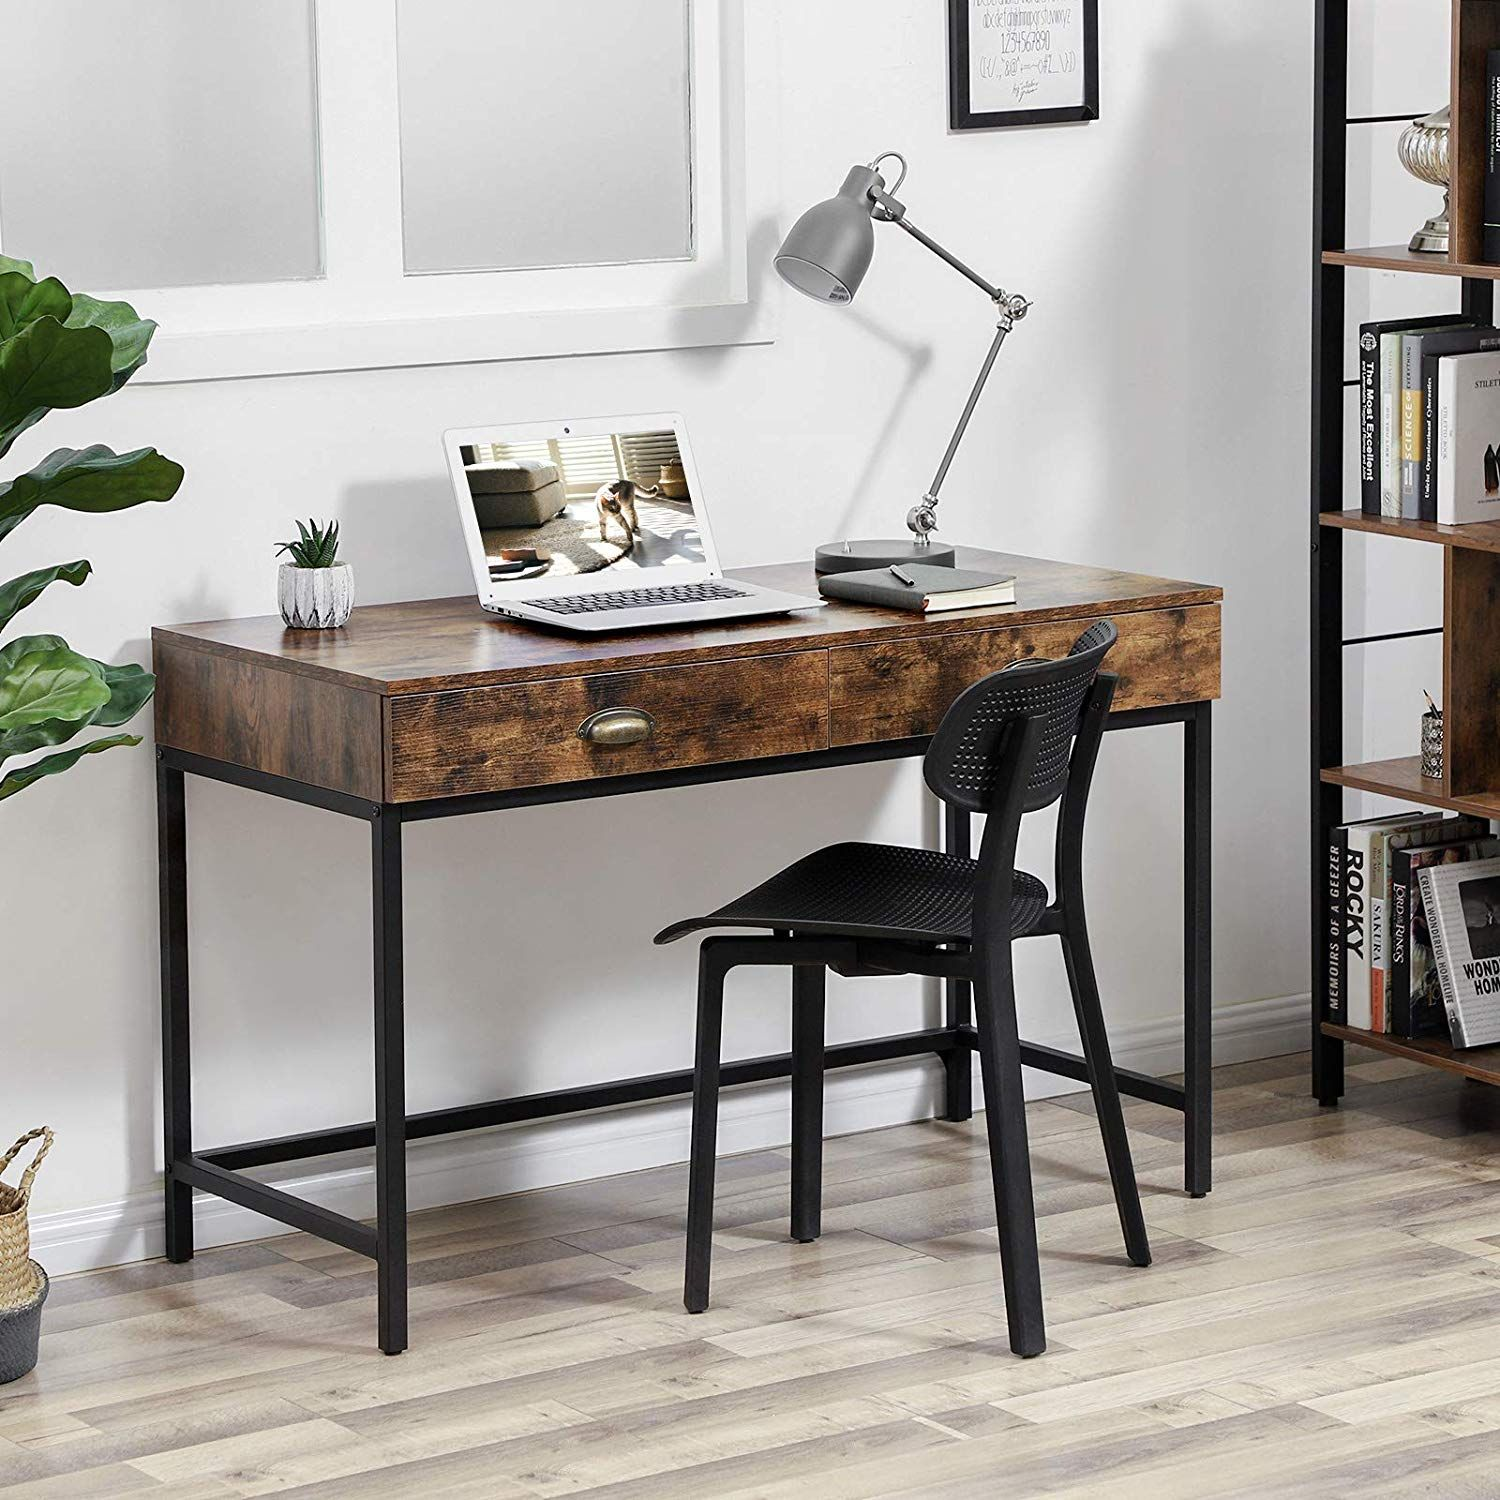 Amazon Com Vasagle Industrial Computer Writing Desk With Drawers Space Saving Study Desk Wi Desk With Drawers Writing Desk With Drawers Computer Table Design